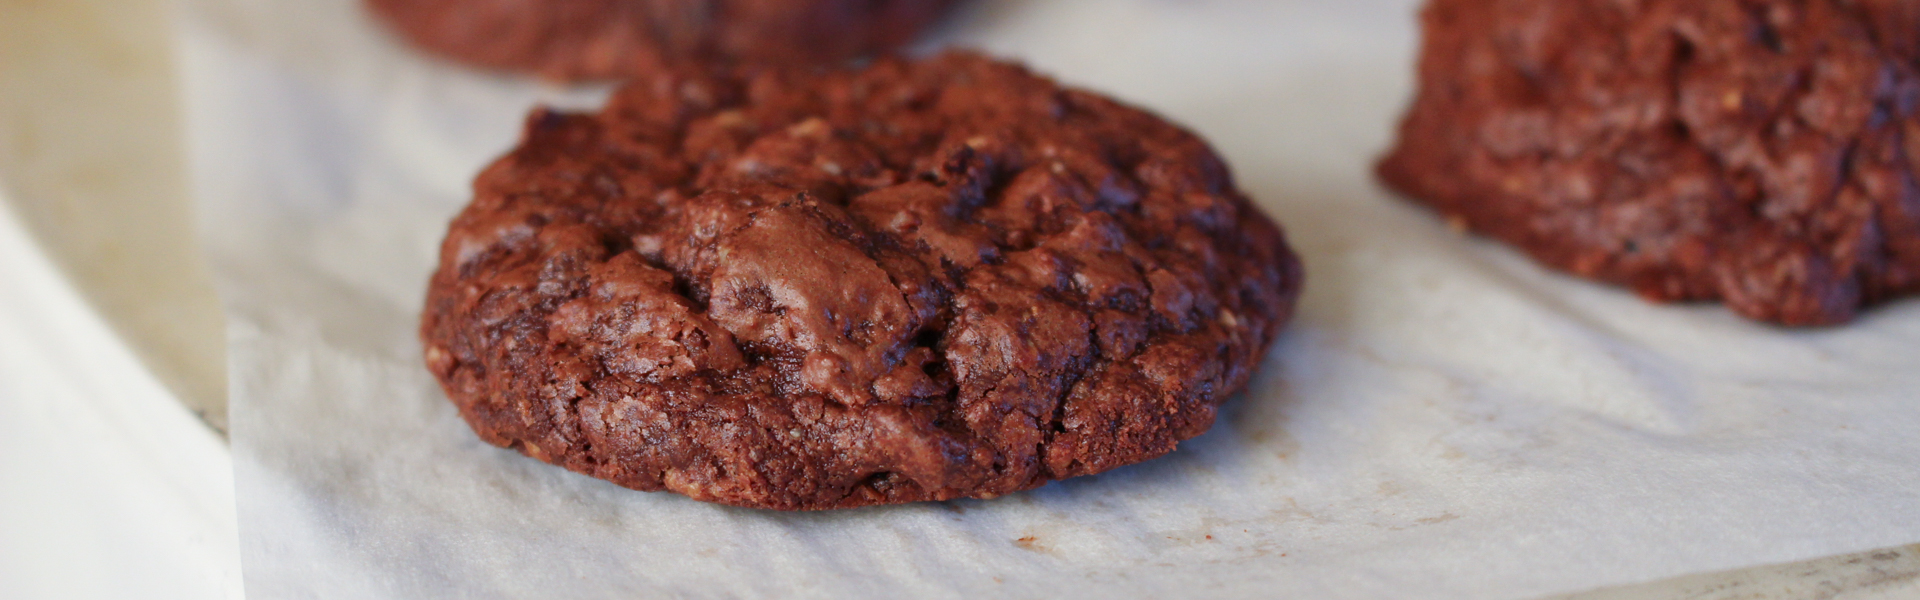 <p>Ground walnuts and hazelnuts take the place of flour in this gluten-free, deeply chocolate cookie. Each cookie also has the equivalent of one prune.</p>